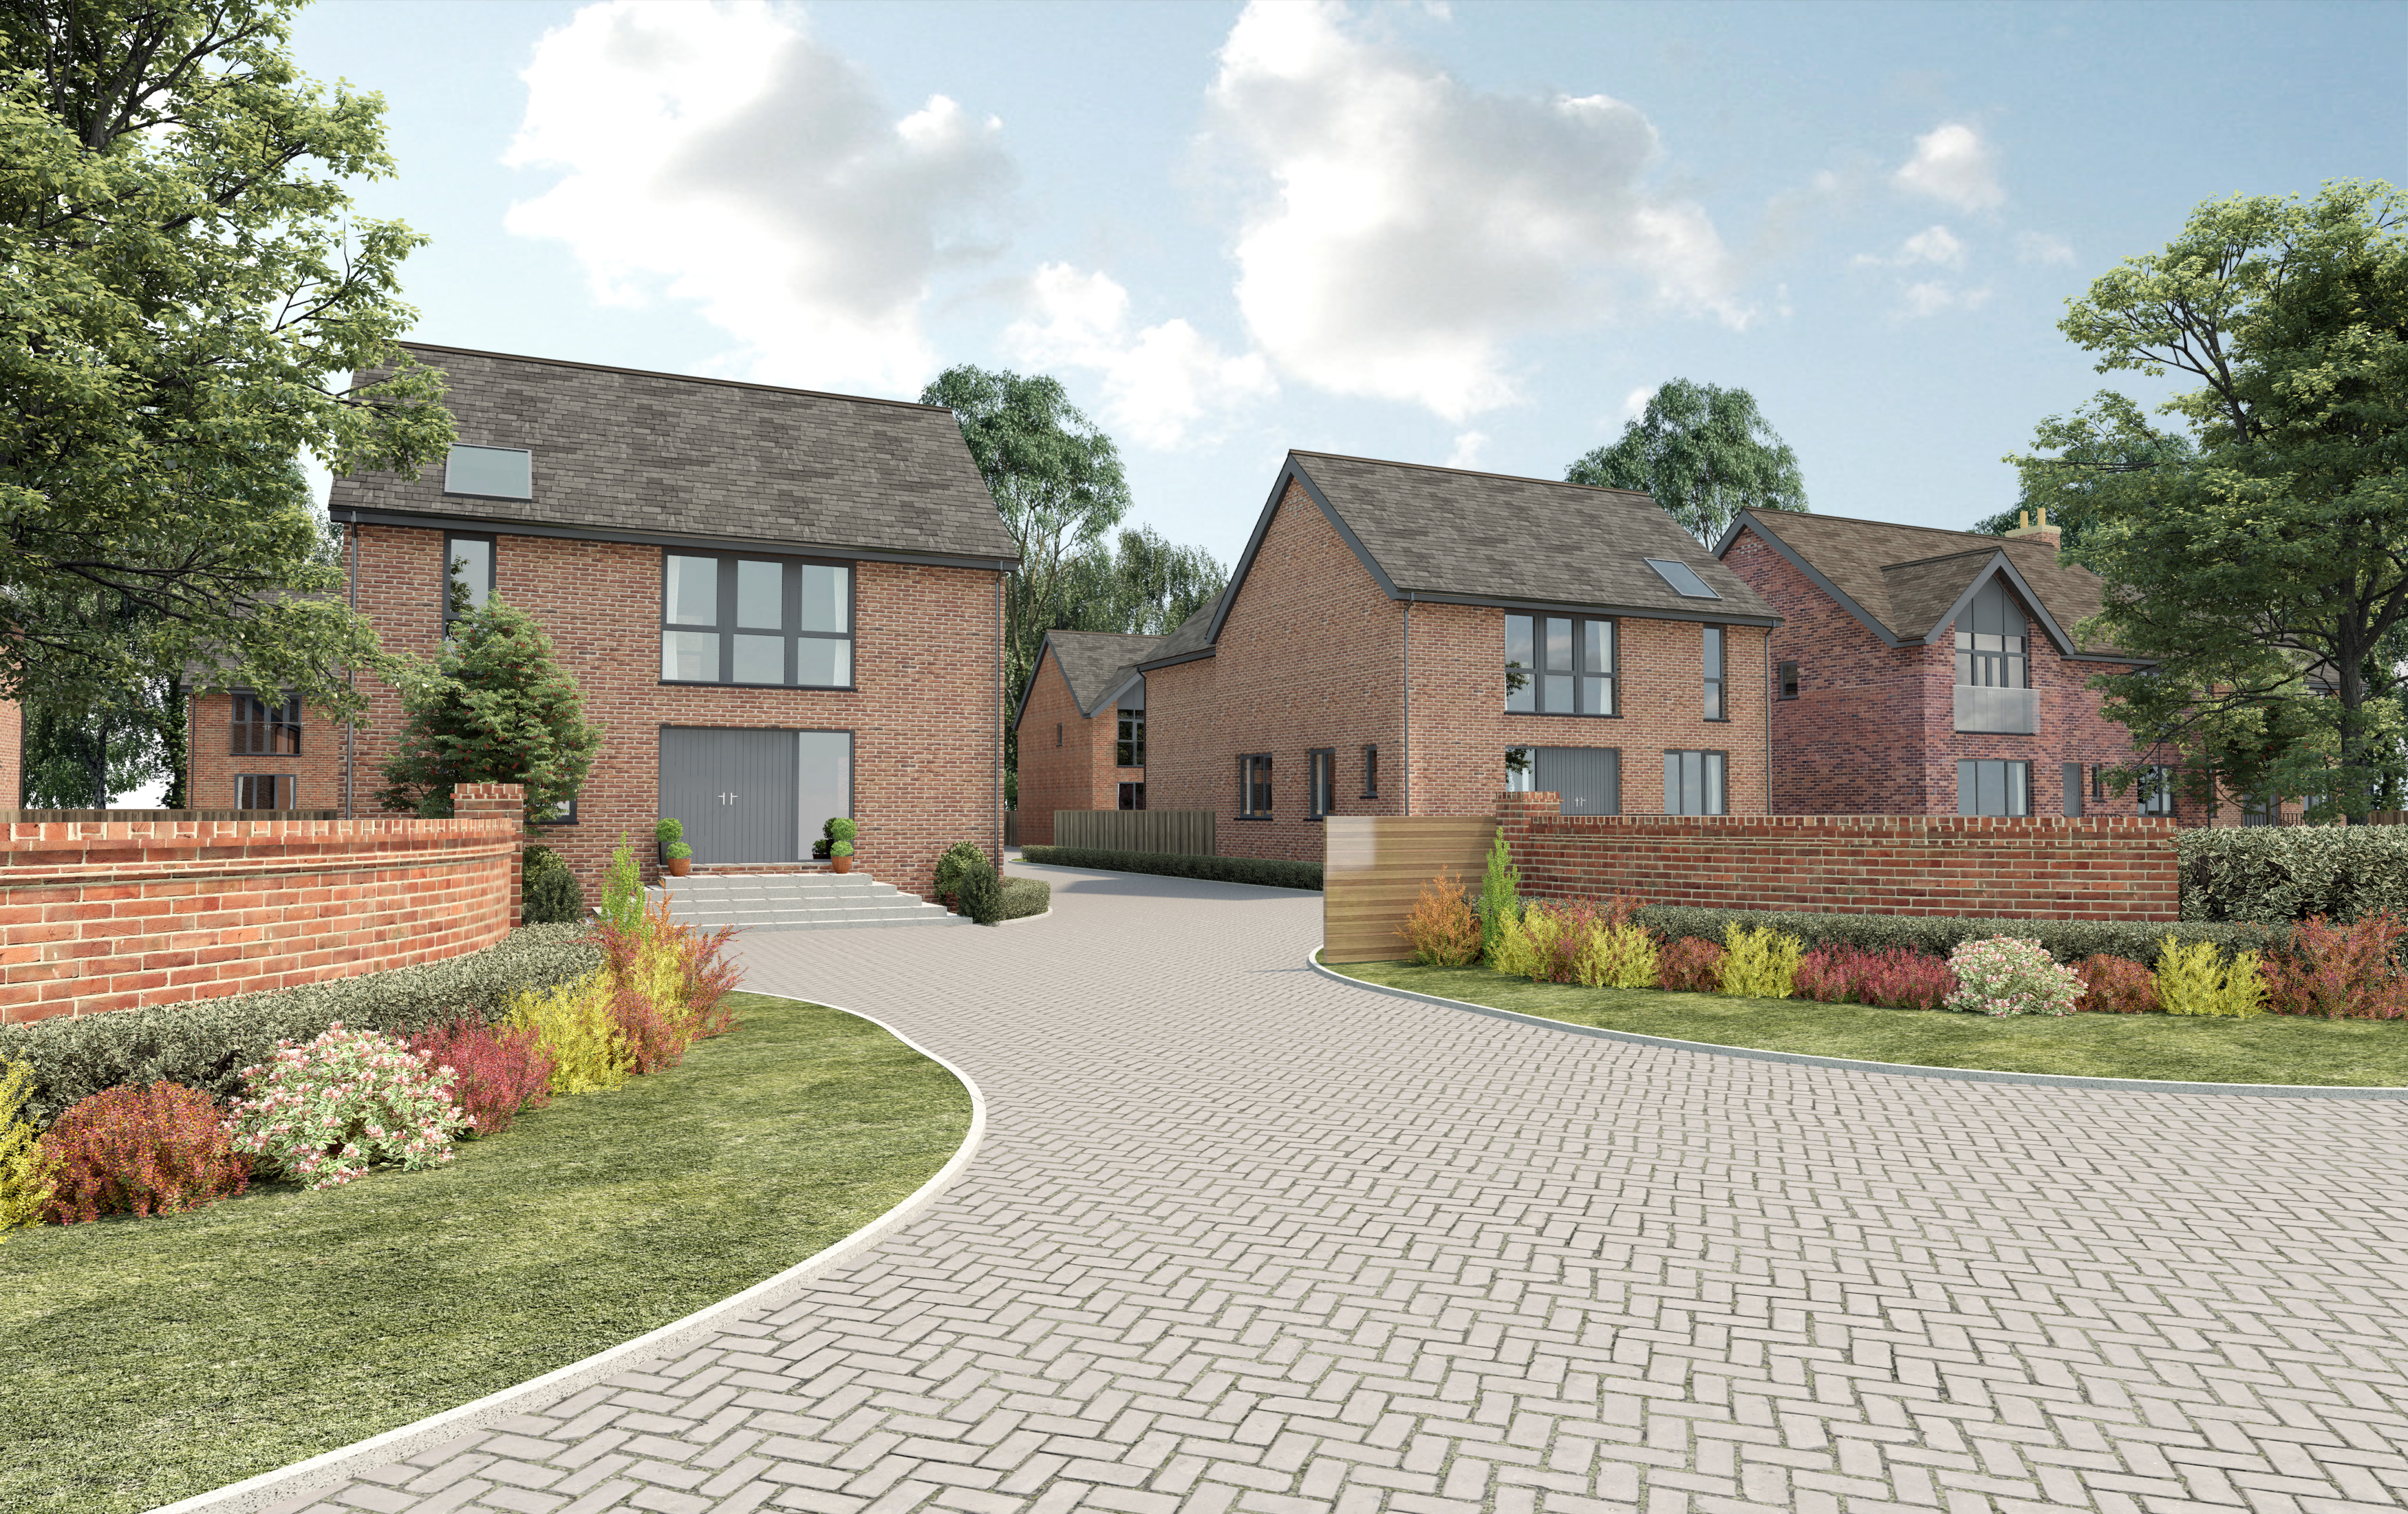 Hampton Gate Friday Lane Solihull B92 4 Bedroom Detached House Full Brick Brand New Home On Wiring To Garage For Sale 45933952 Primelocation